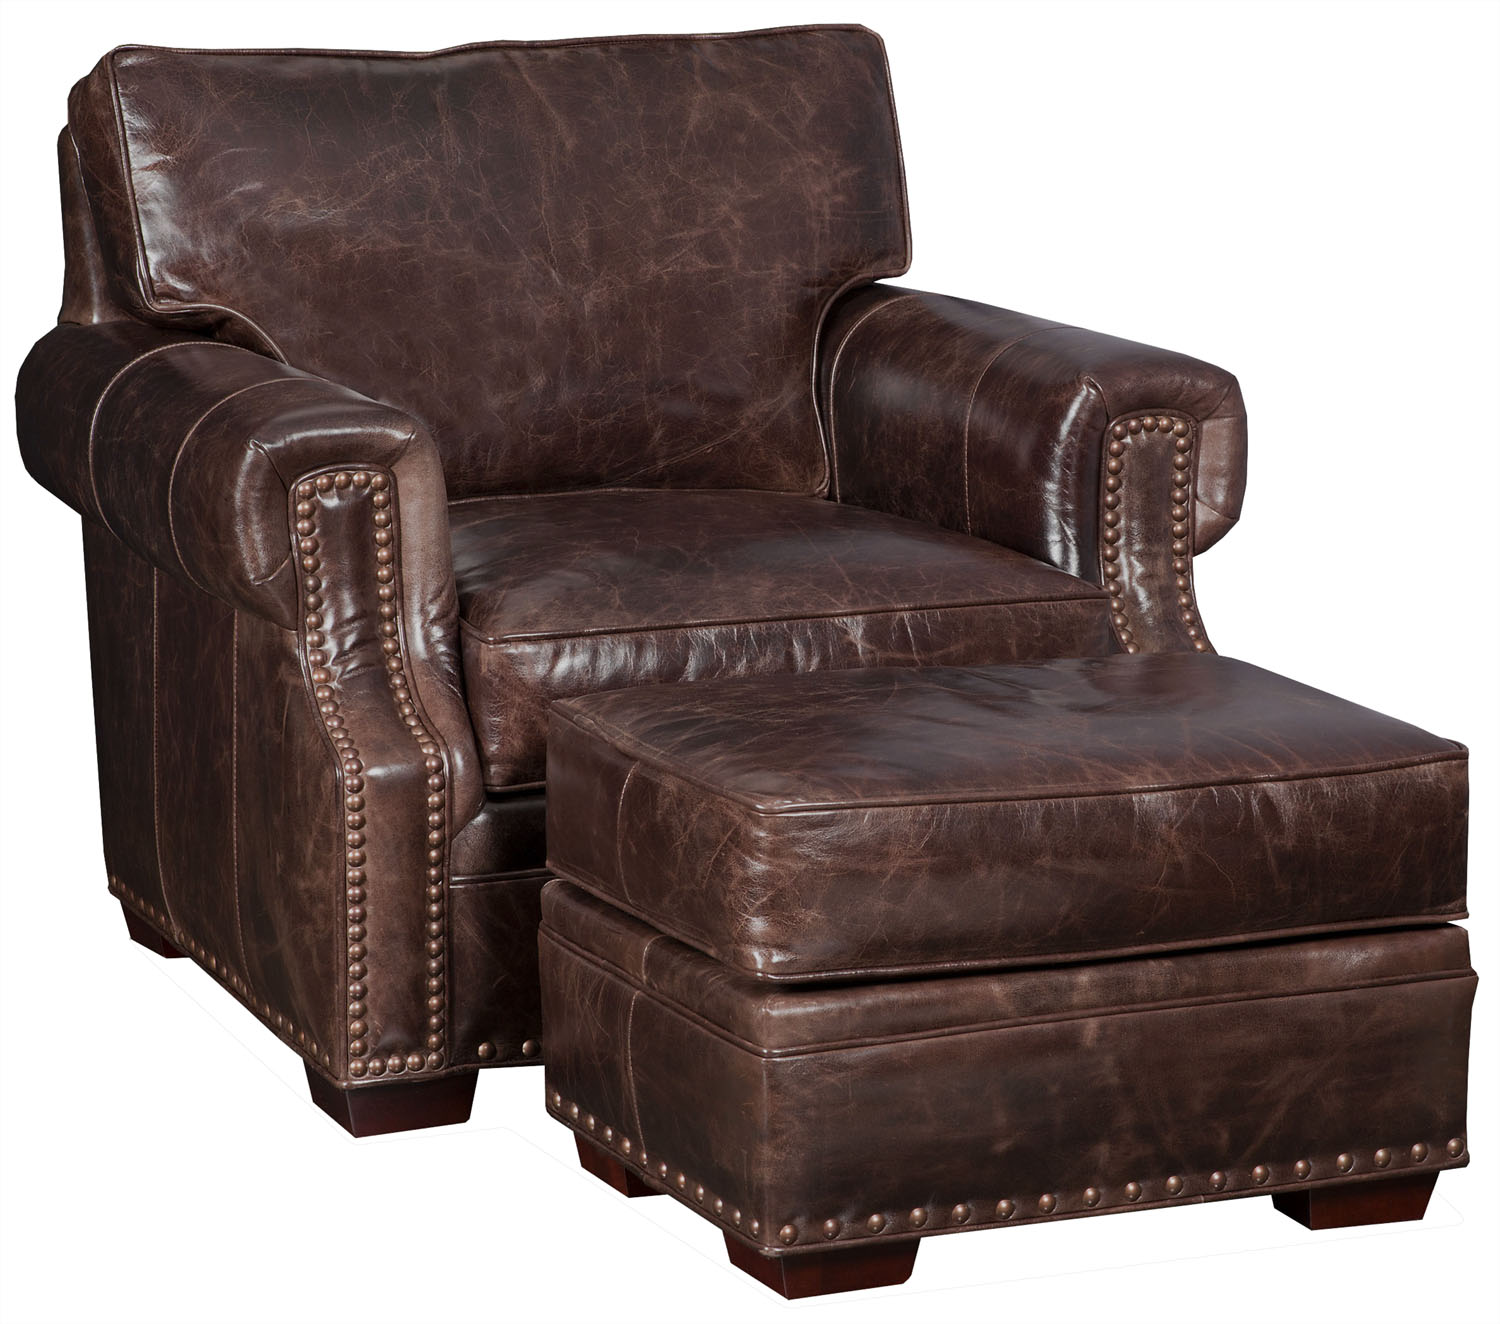 Bradington Young Chair And Ottoman 9901206 Grindstaff S